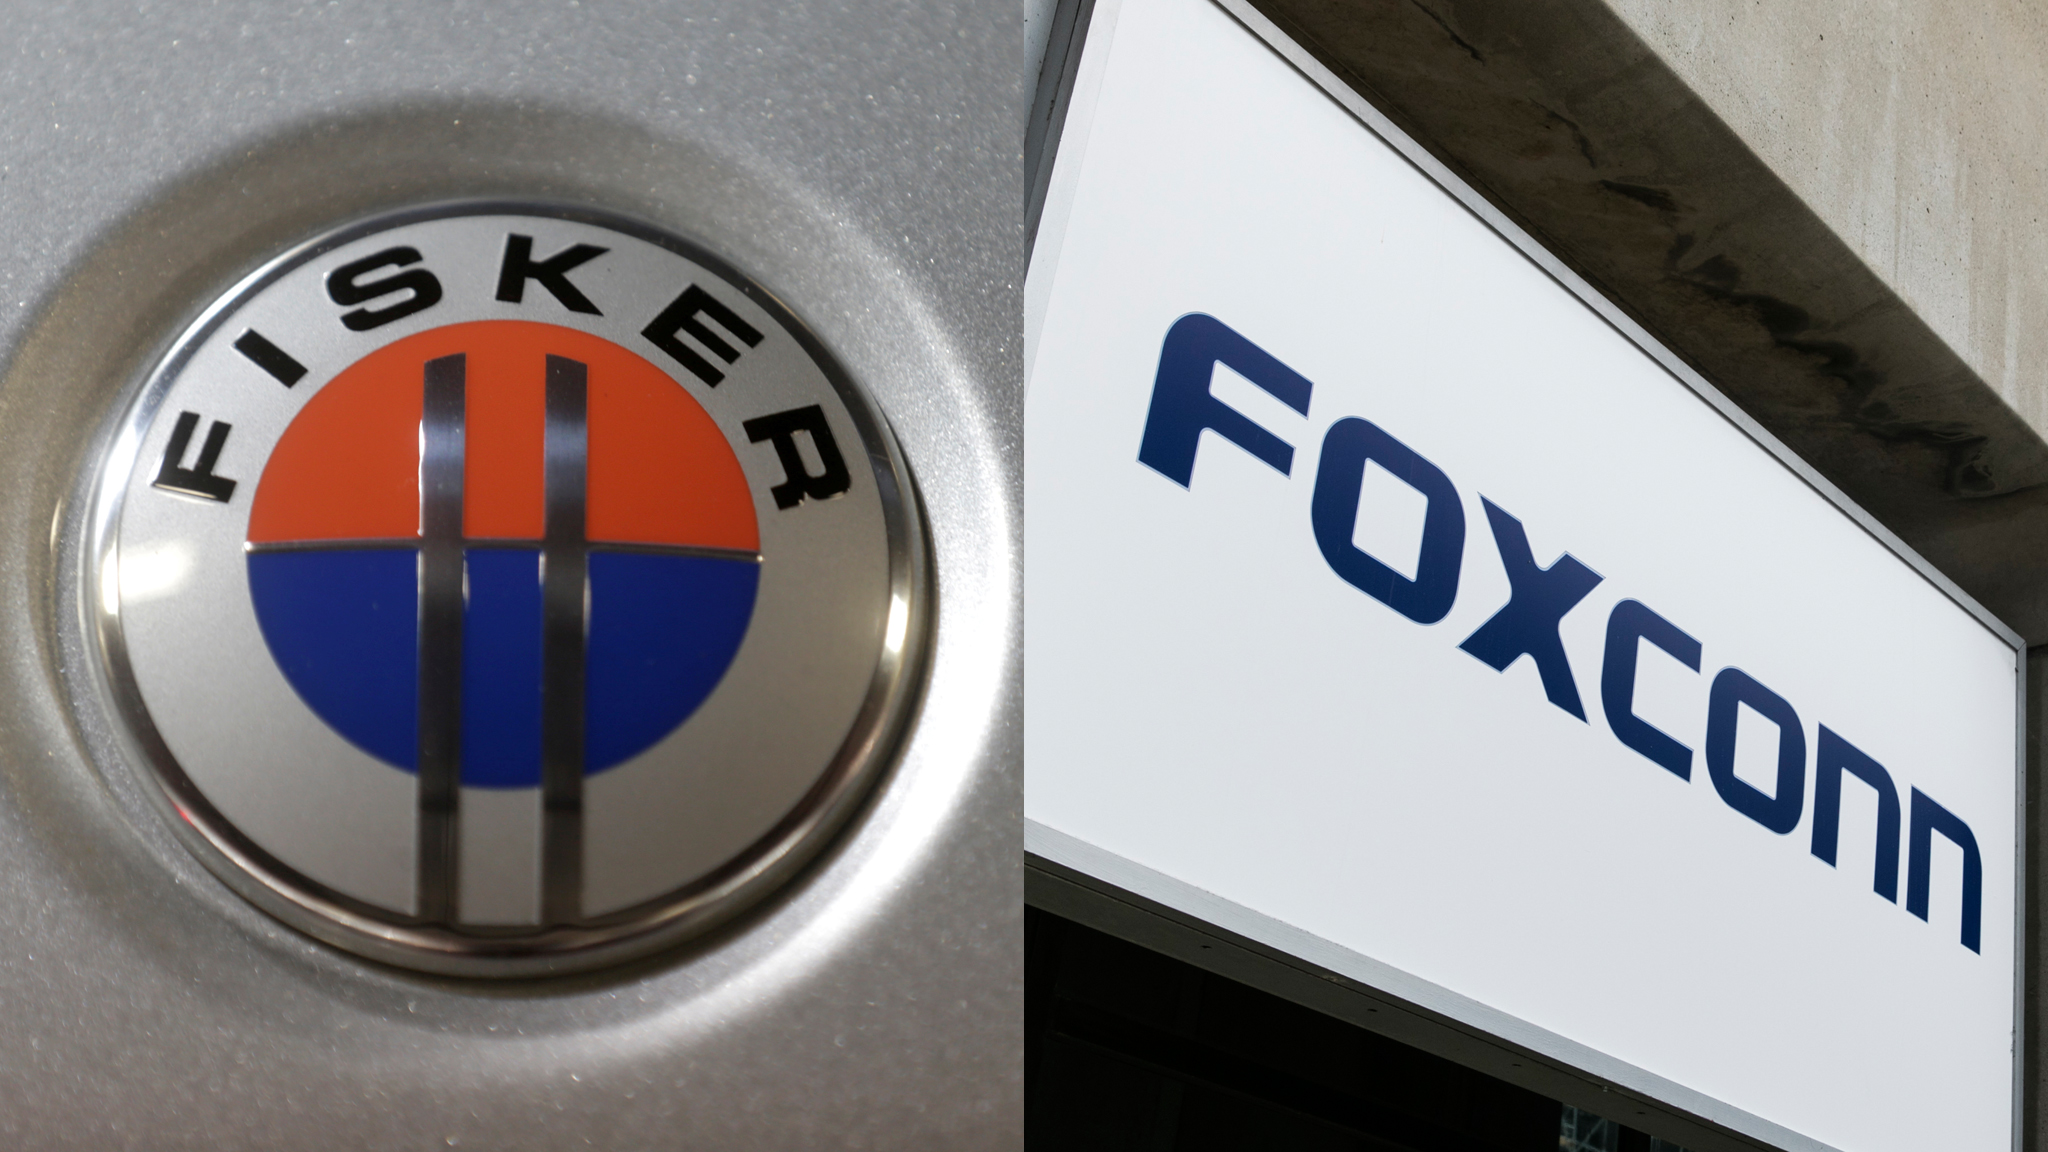 Fisker and Foxconn